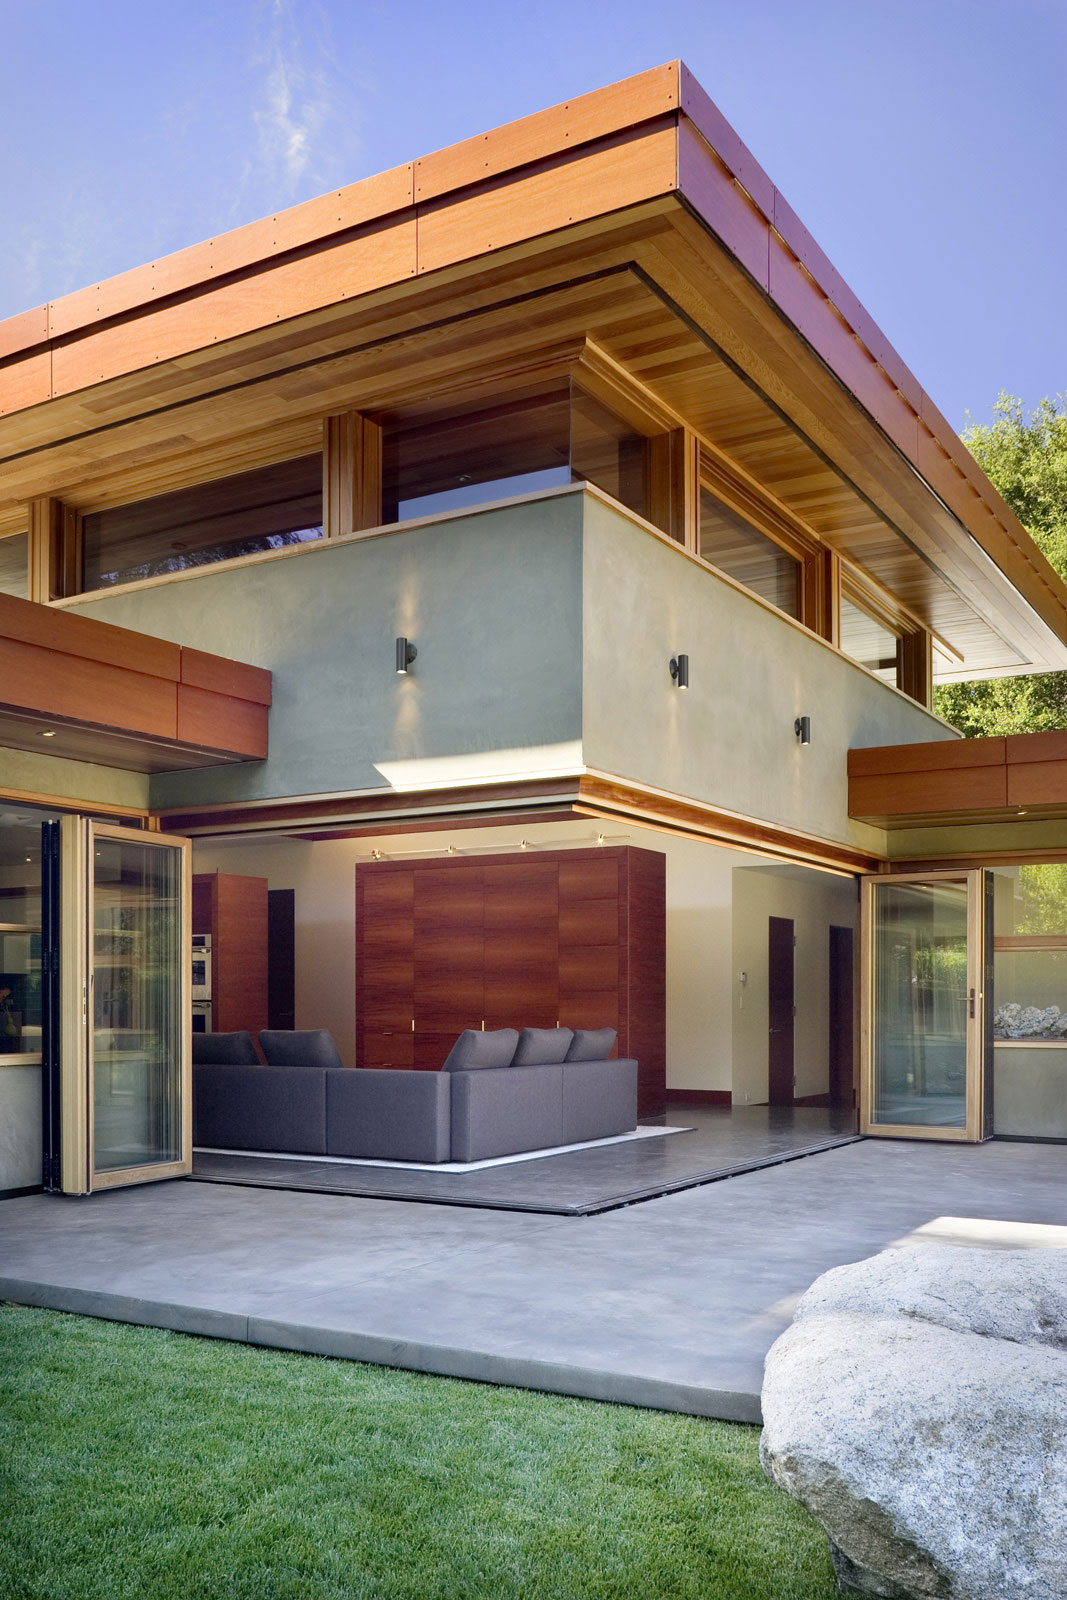 Wheeler Residence by William Duff Architects (3)